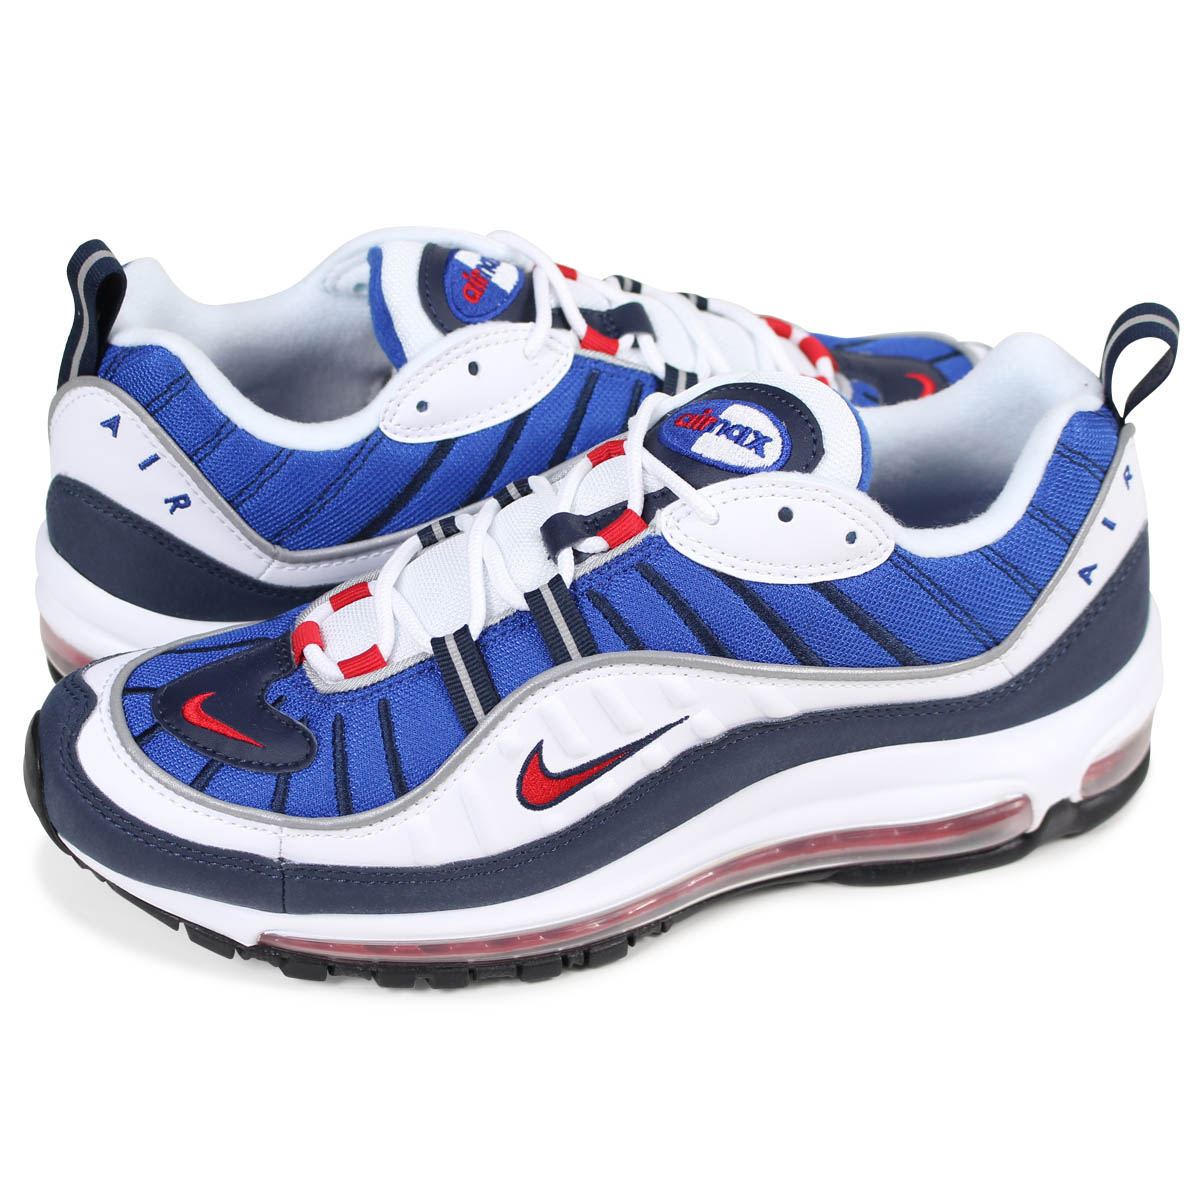 size 40 f17c8 cadd4 NIKE AIR MAX 98 GUNDAM Kie Ney AMAX 98 sneakers men 640,744-100 white [load  planned Shinnyu load in reservation product 2/14 containing]